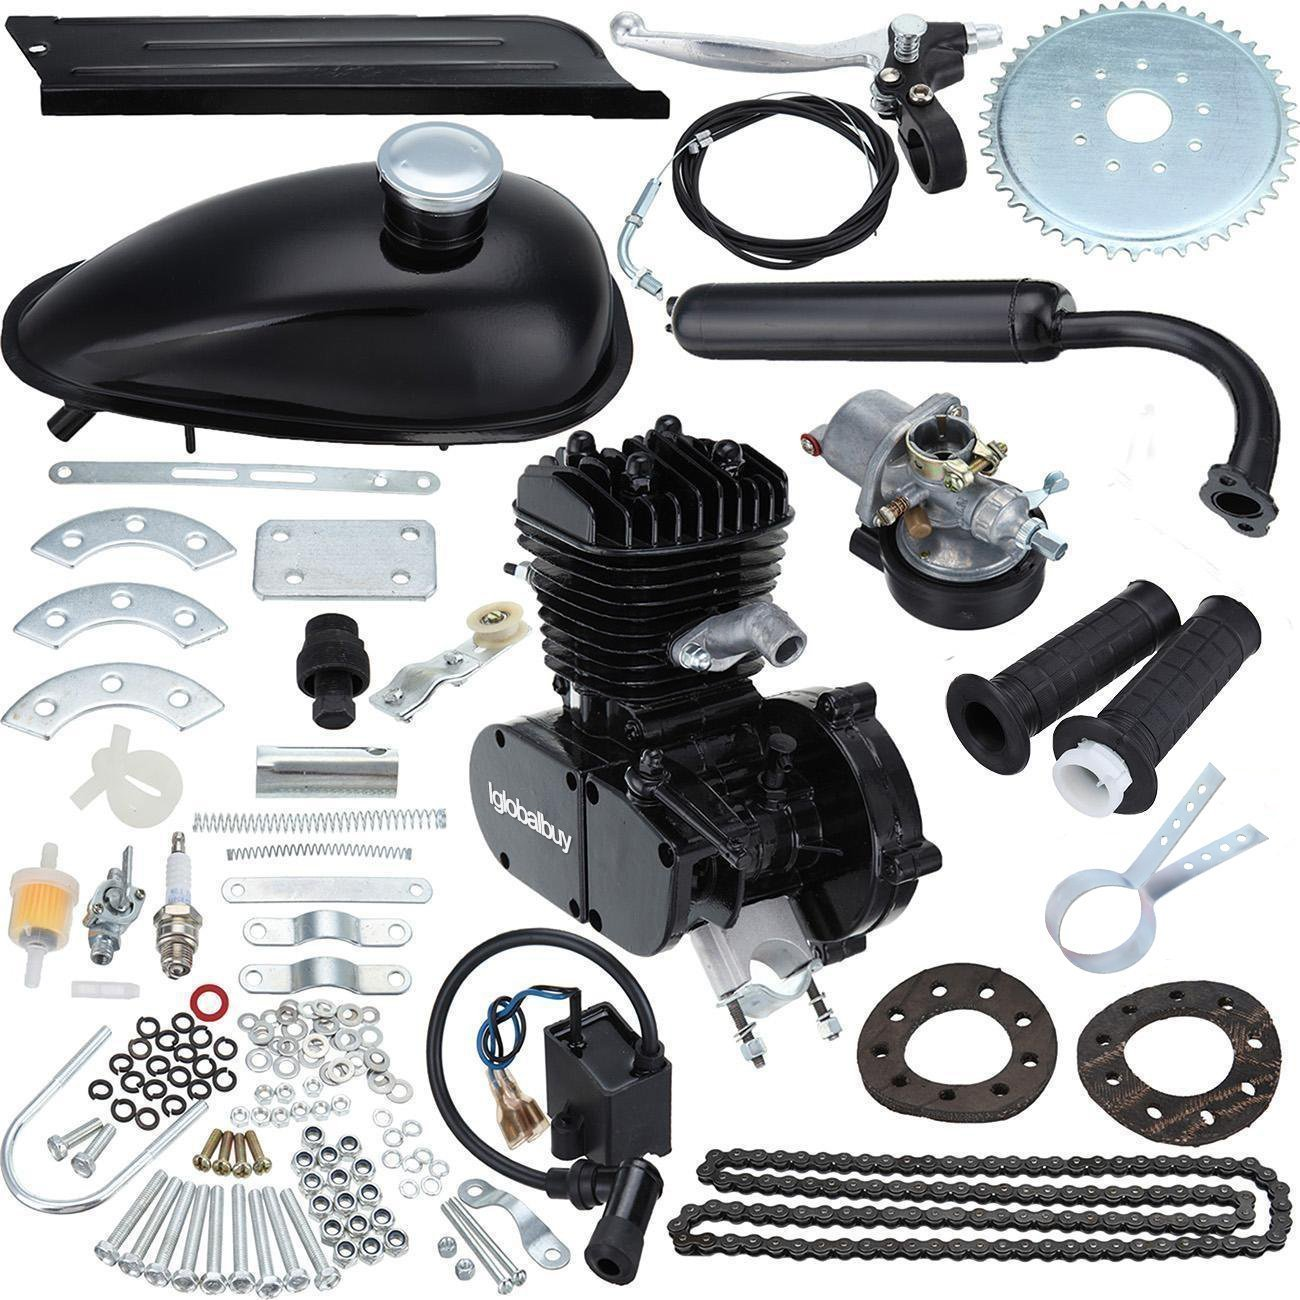 Iglobalbuy 80CC Petrol Gas Motor Bicycle Engine Complete Kit Motorized Bike 2-Stroke (black)